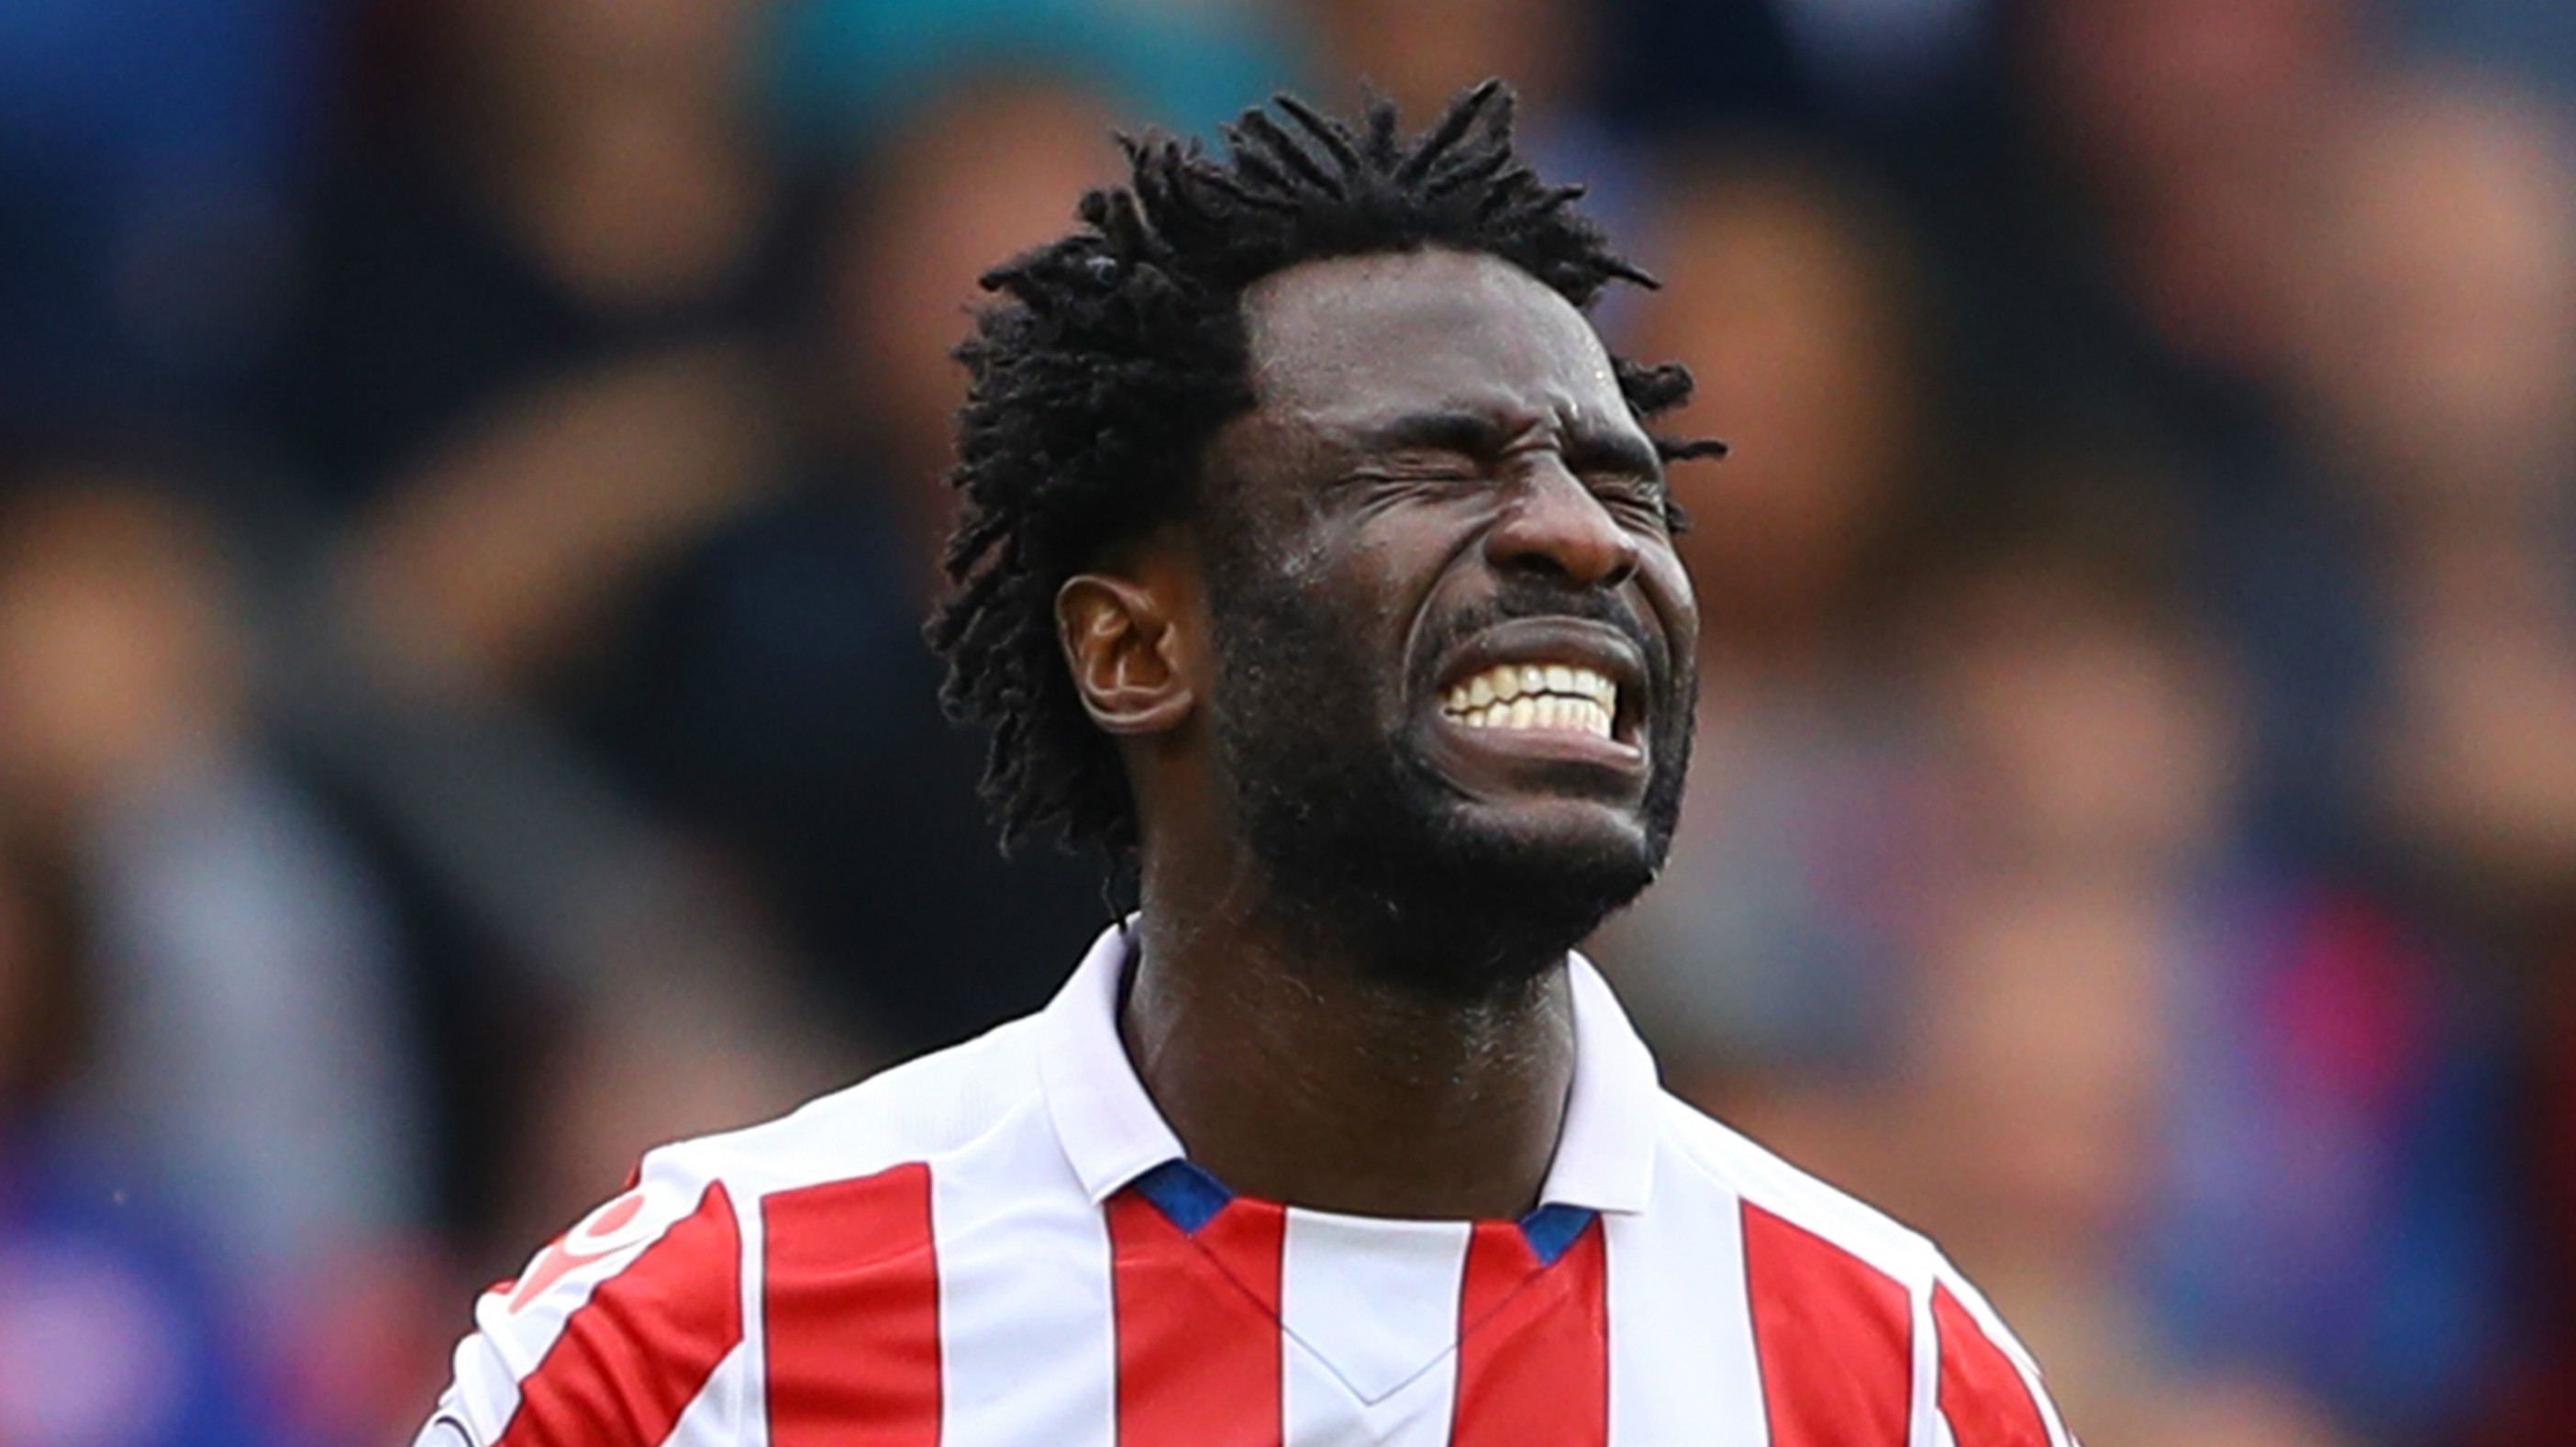 Swansea's Bony to miss League Cup clash vs